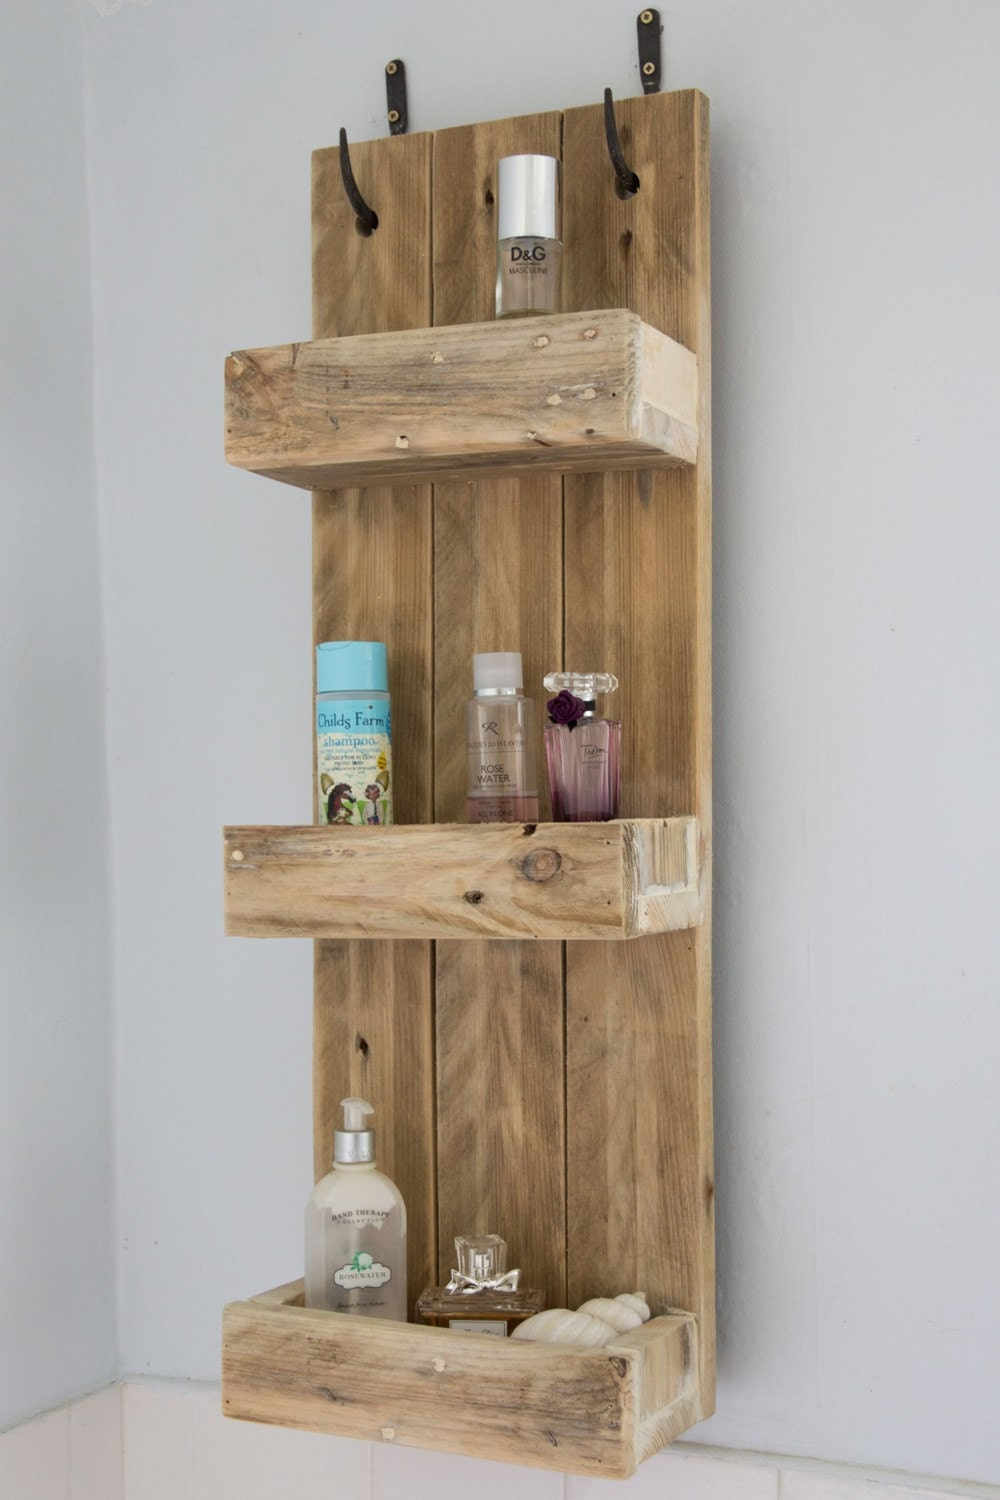 Bathroom Cabinets 30cm Wide rustic bathroom shelves made from reclaimed pallet wood